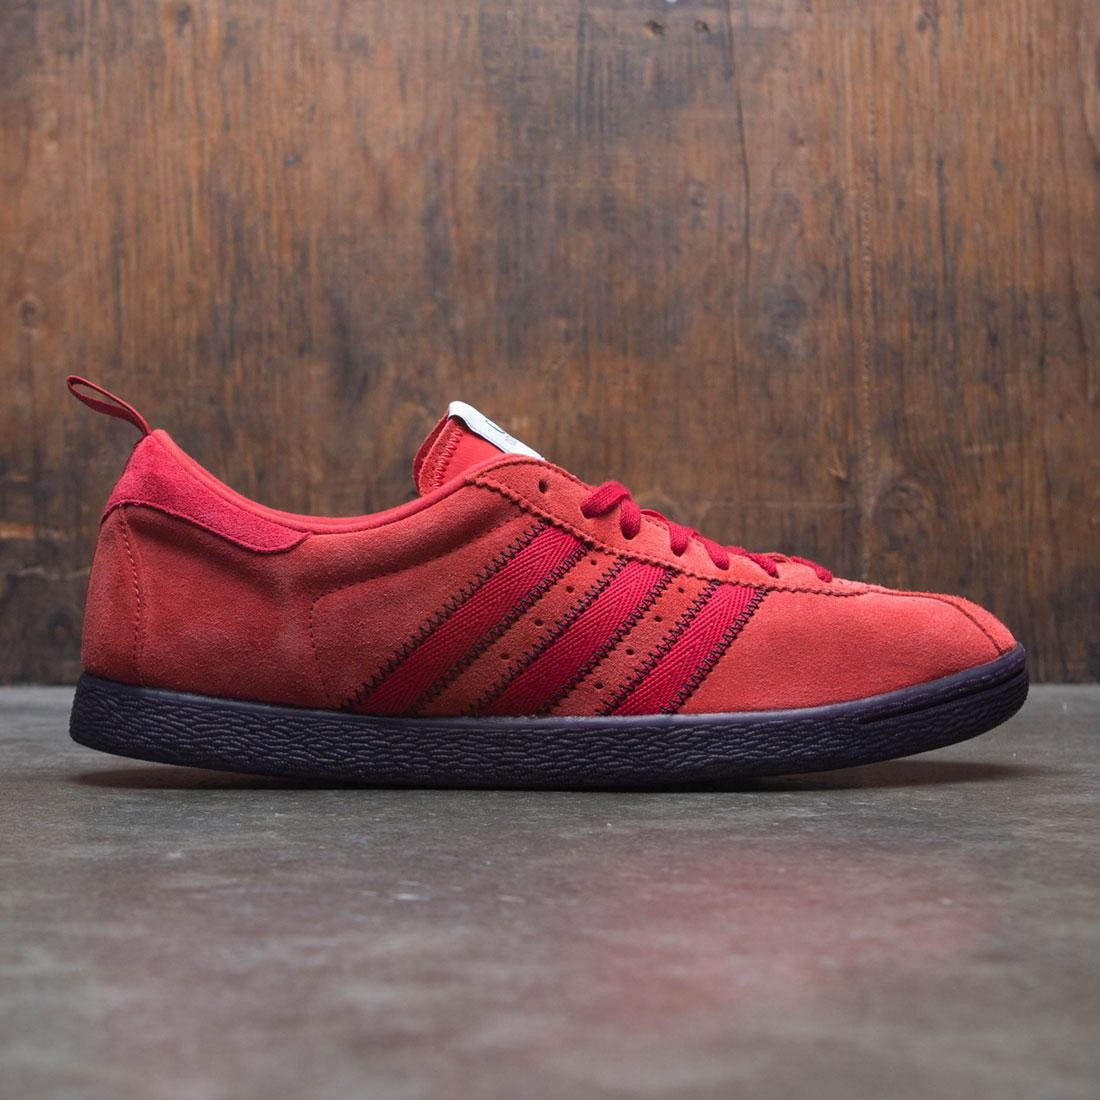 buy online 51f4d 9f2e4 Adidas x C.P. Company Men Tobacco (red / st brick / red night / surf red)